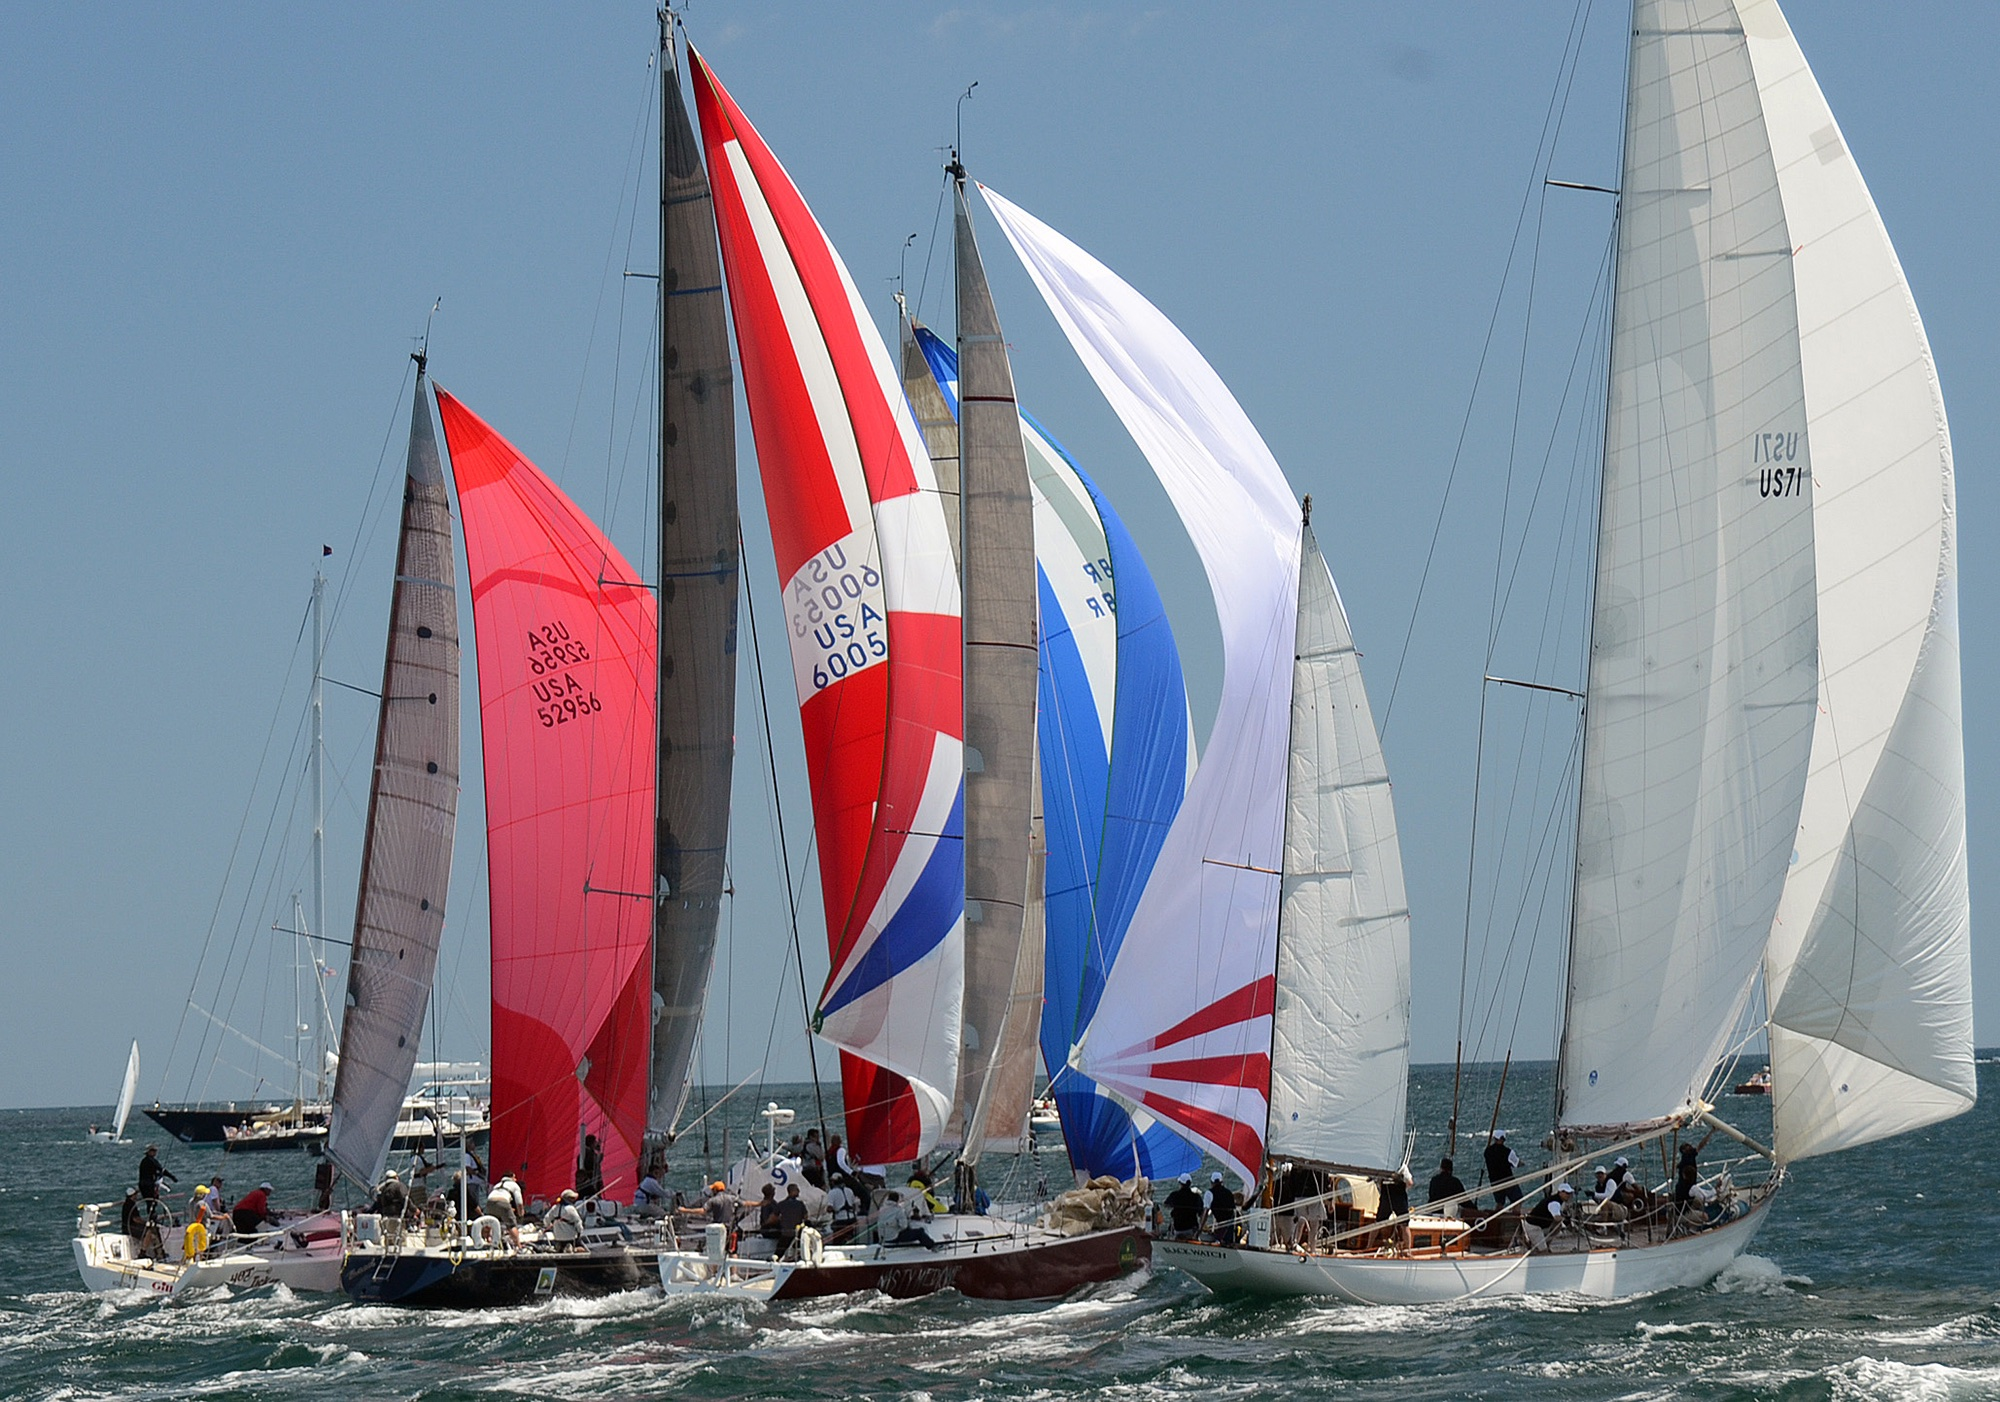 In a northerly breeze, the fleet starts under colorful spinnakers as it did in 2012 with modern boats lined up next to the white sails of Black Watch, which celebrates its 80th season with the 2108 race (Talbot Wilson photo)